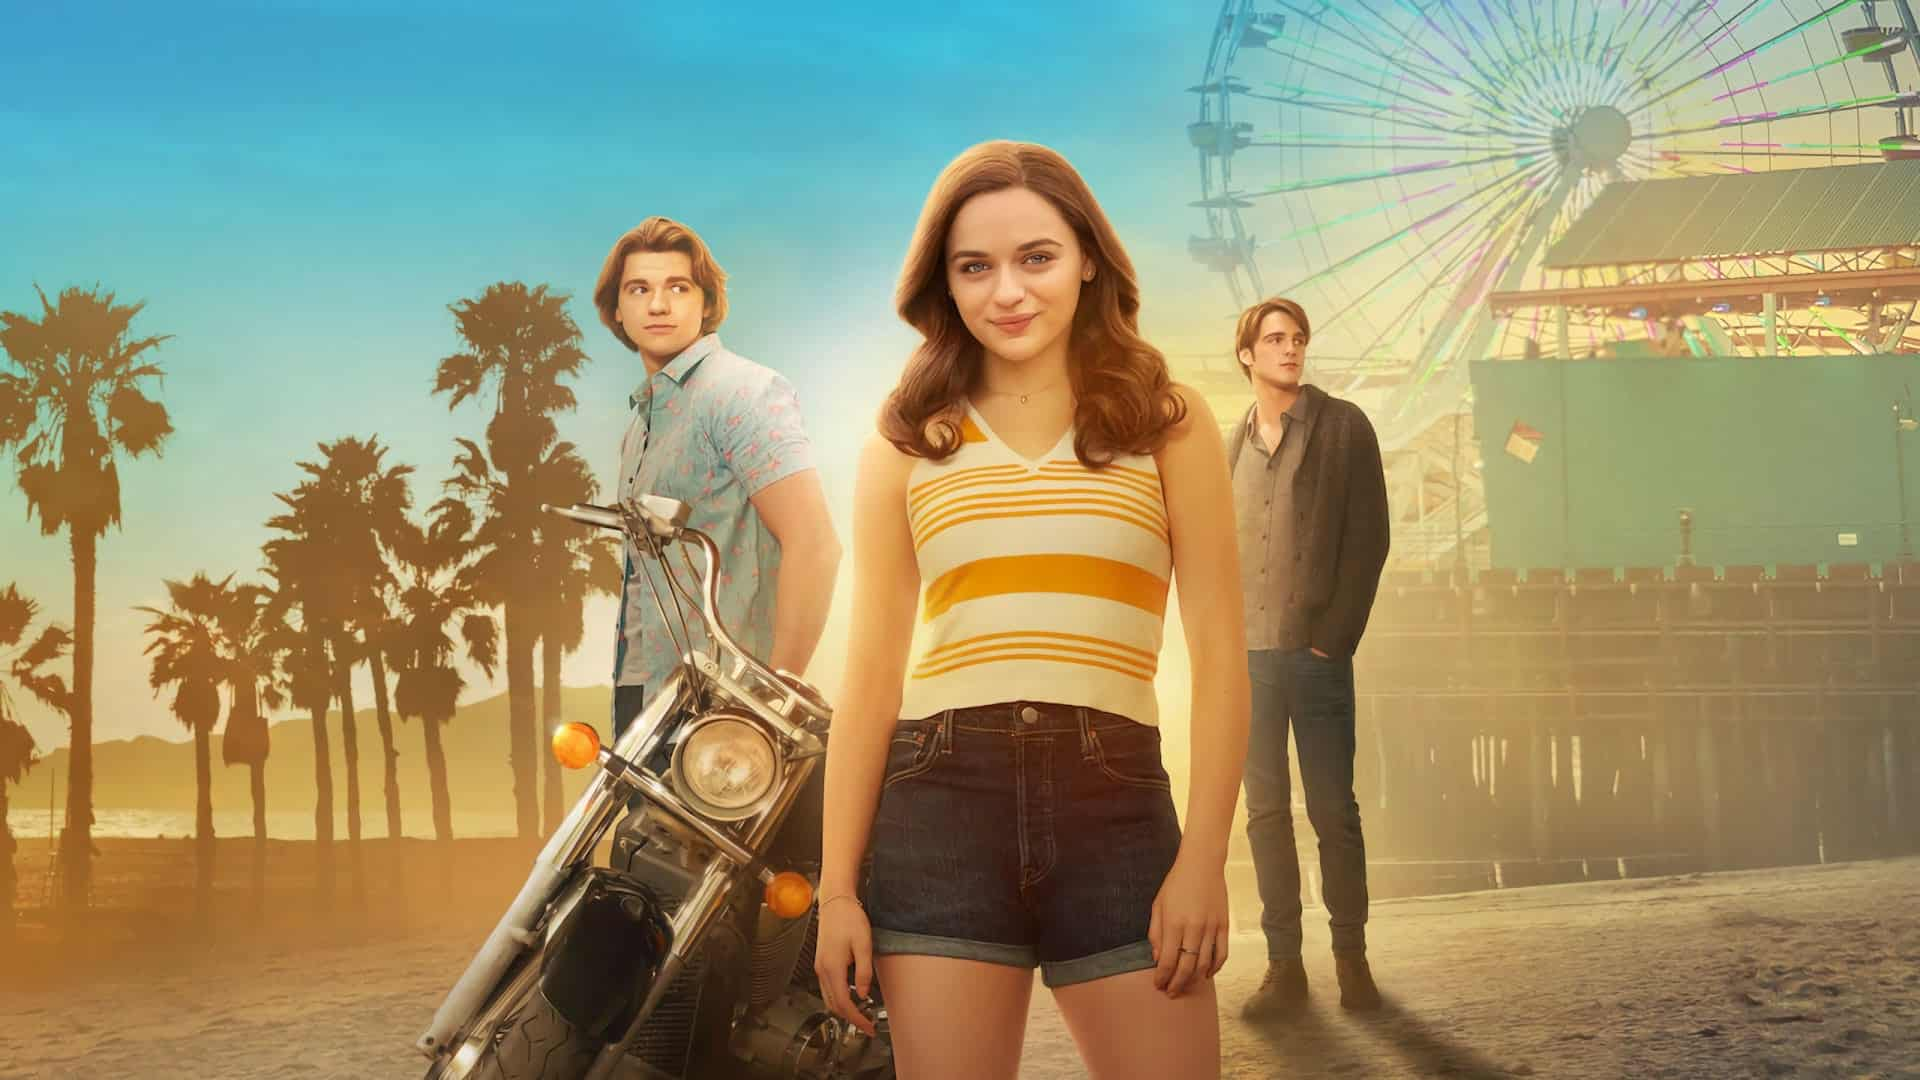 Film The Kissing Booth 2 trailer